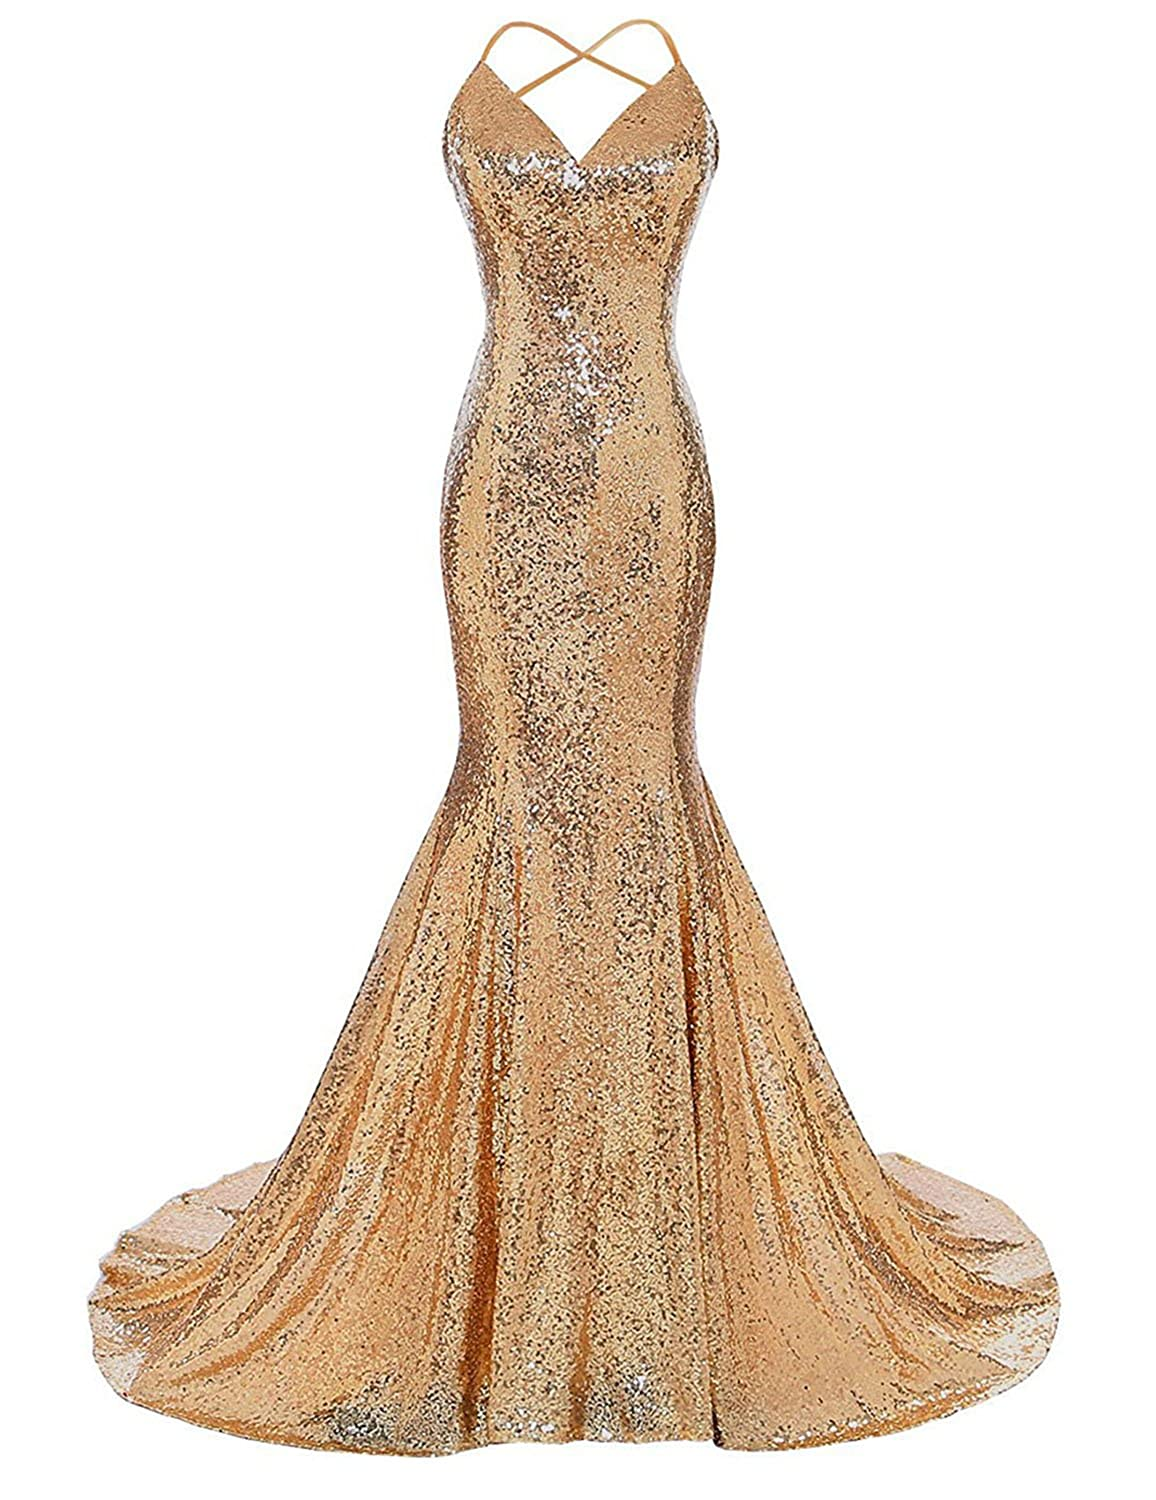 gold Monalia Women's 2018 Formal Evening Dresses Sequined Mermaid Prom Gowns EV4